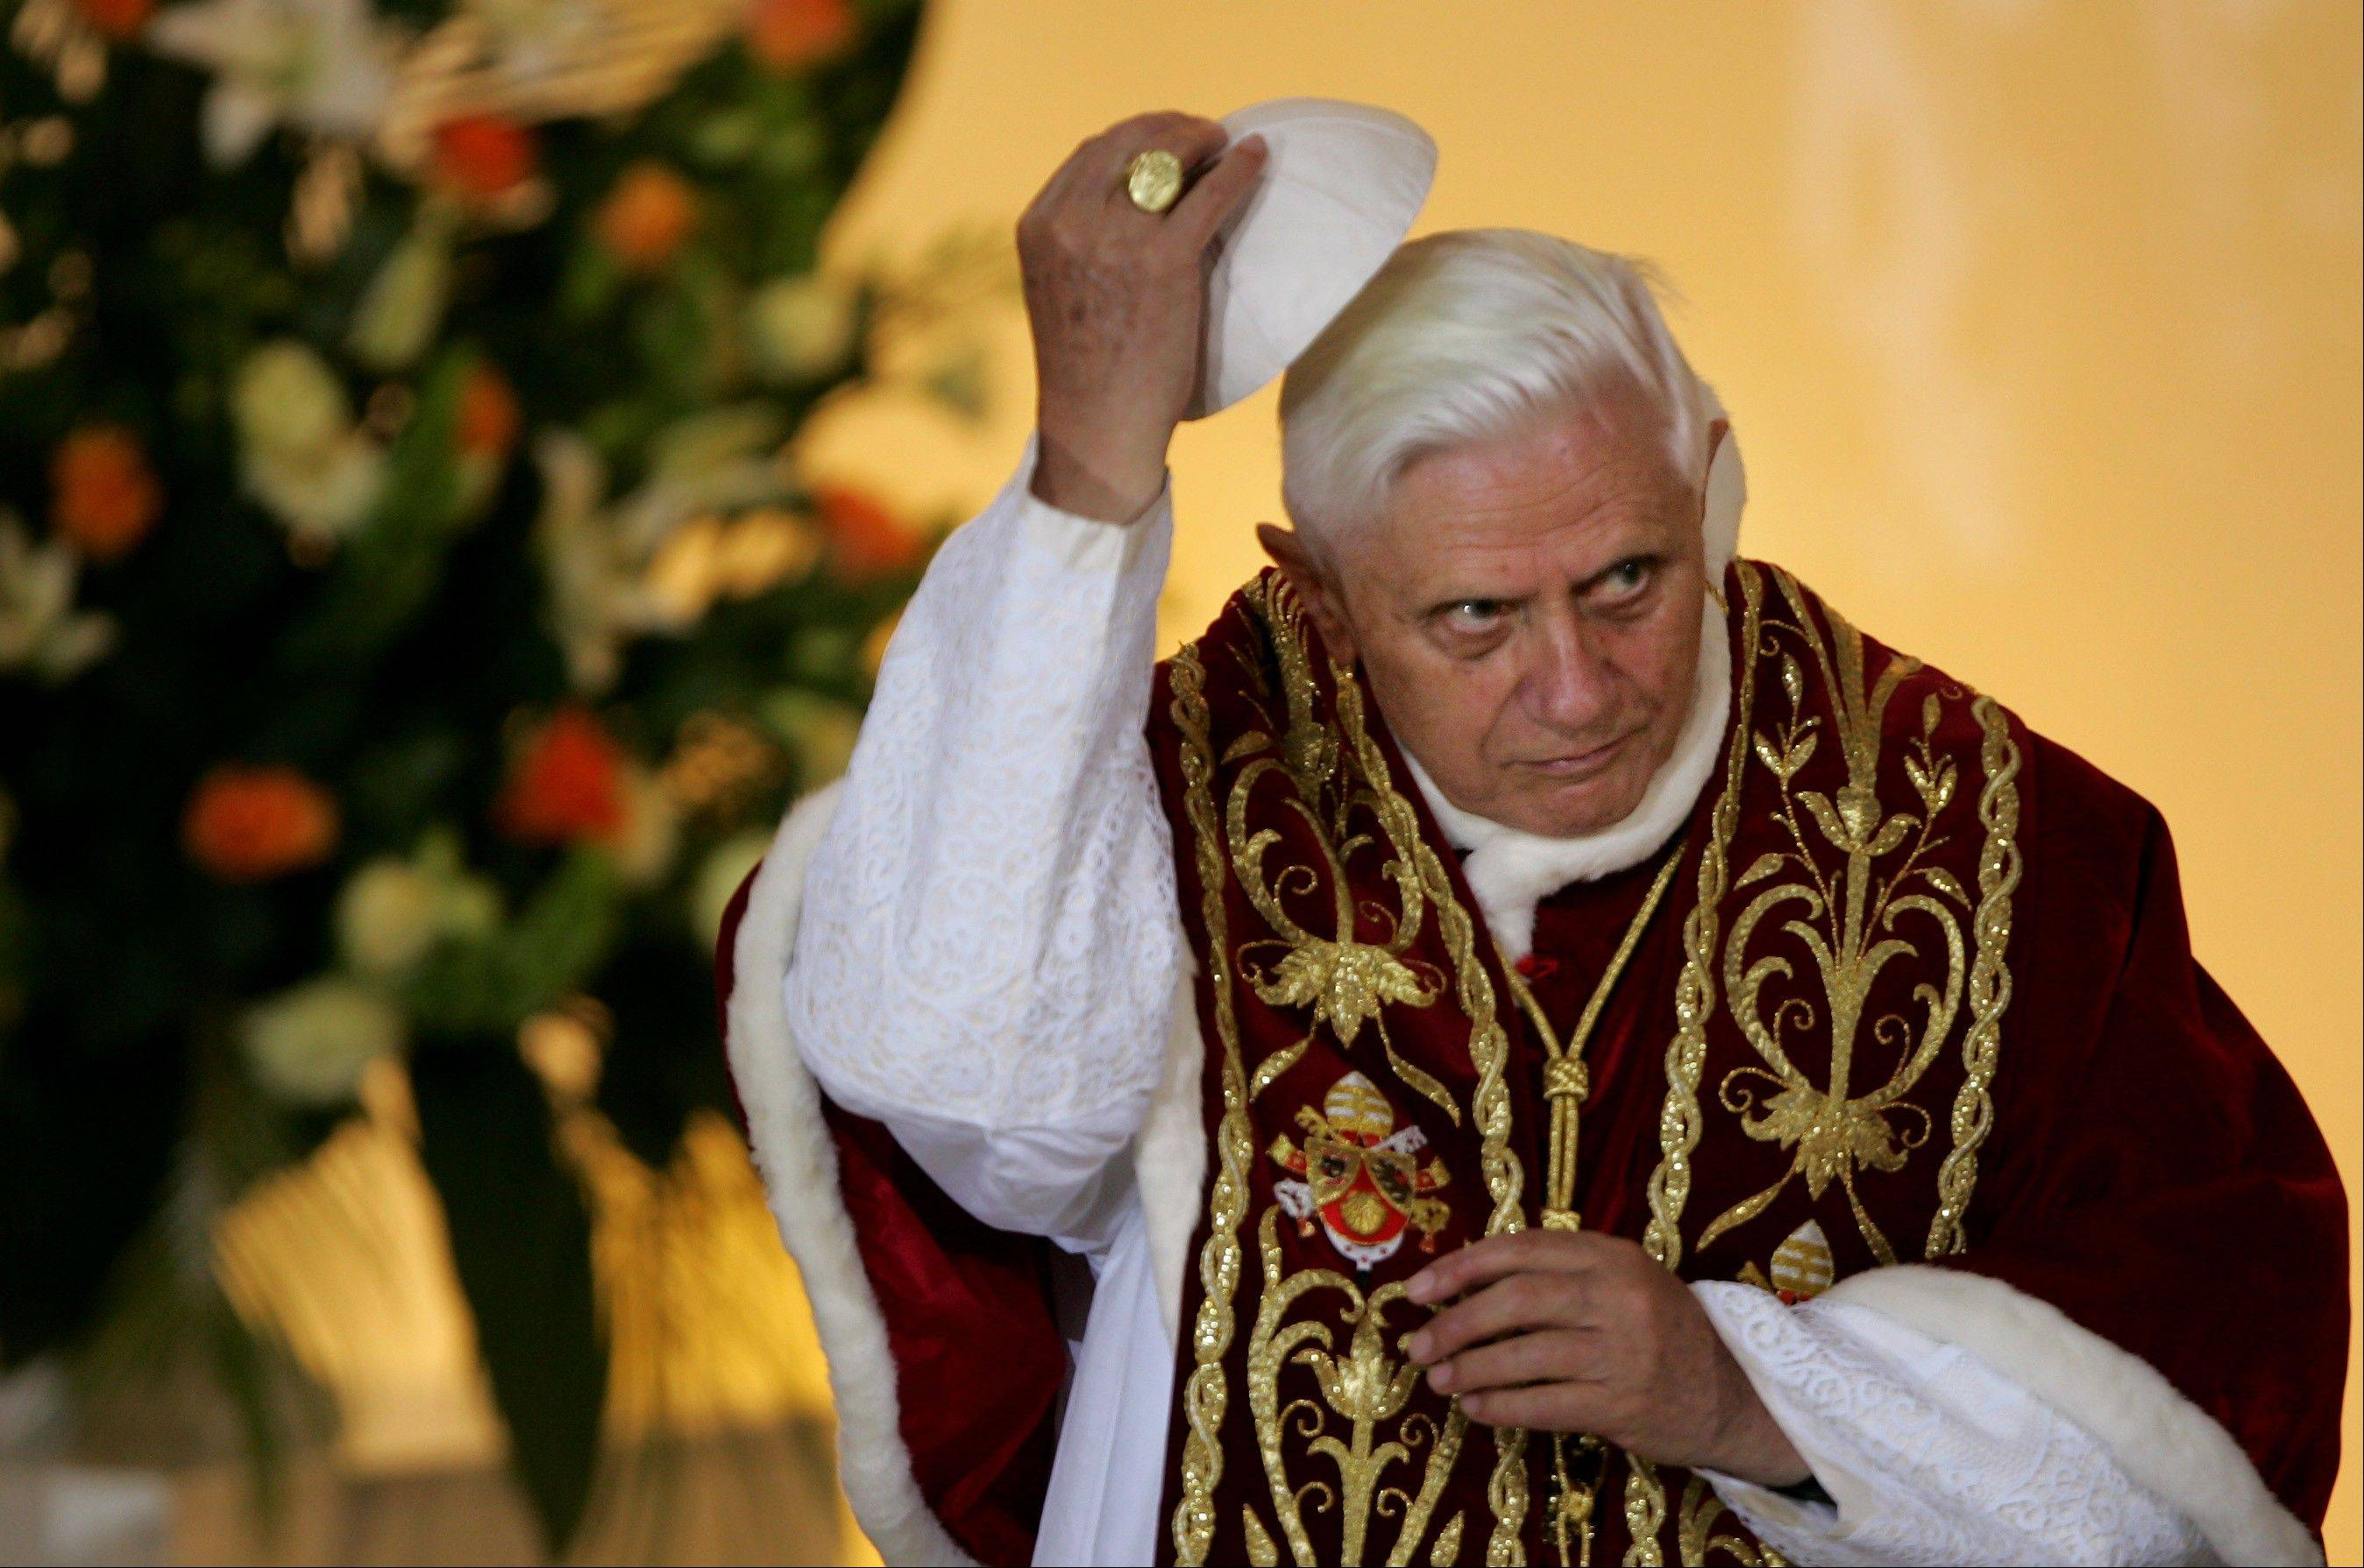 Pope Benedict XVI lifting his scull cap during an ecumenical meeting at the Holy Trinity church in Warsaw, Poland.